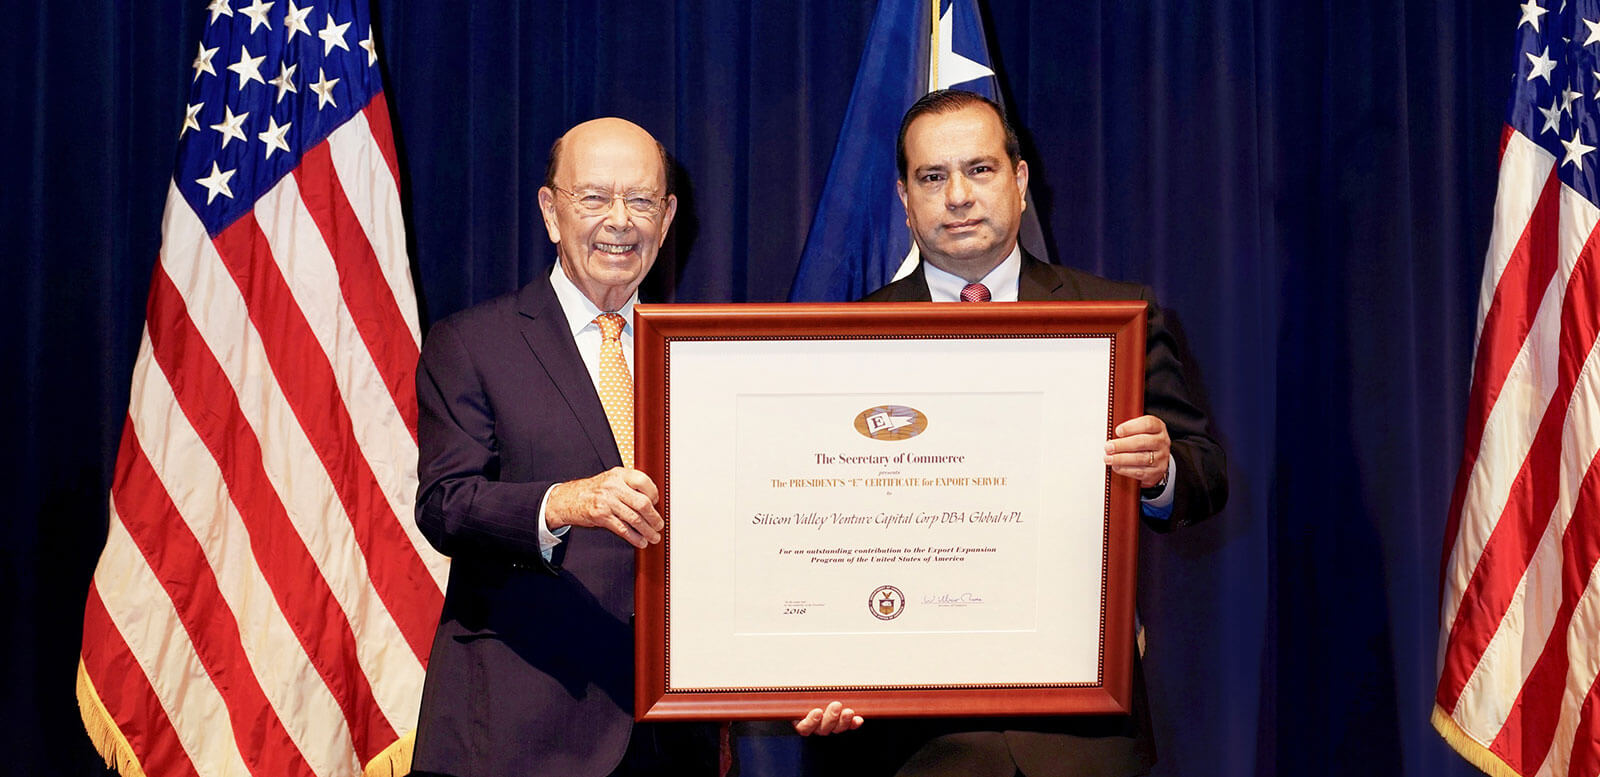 Presidential Award for Export Service